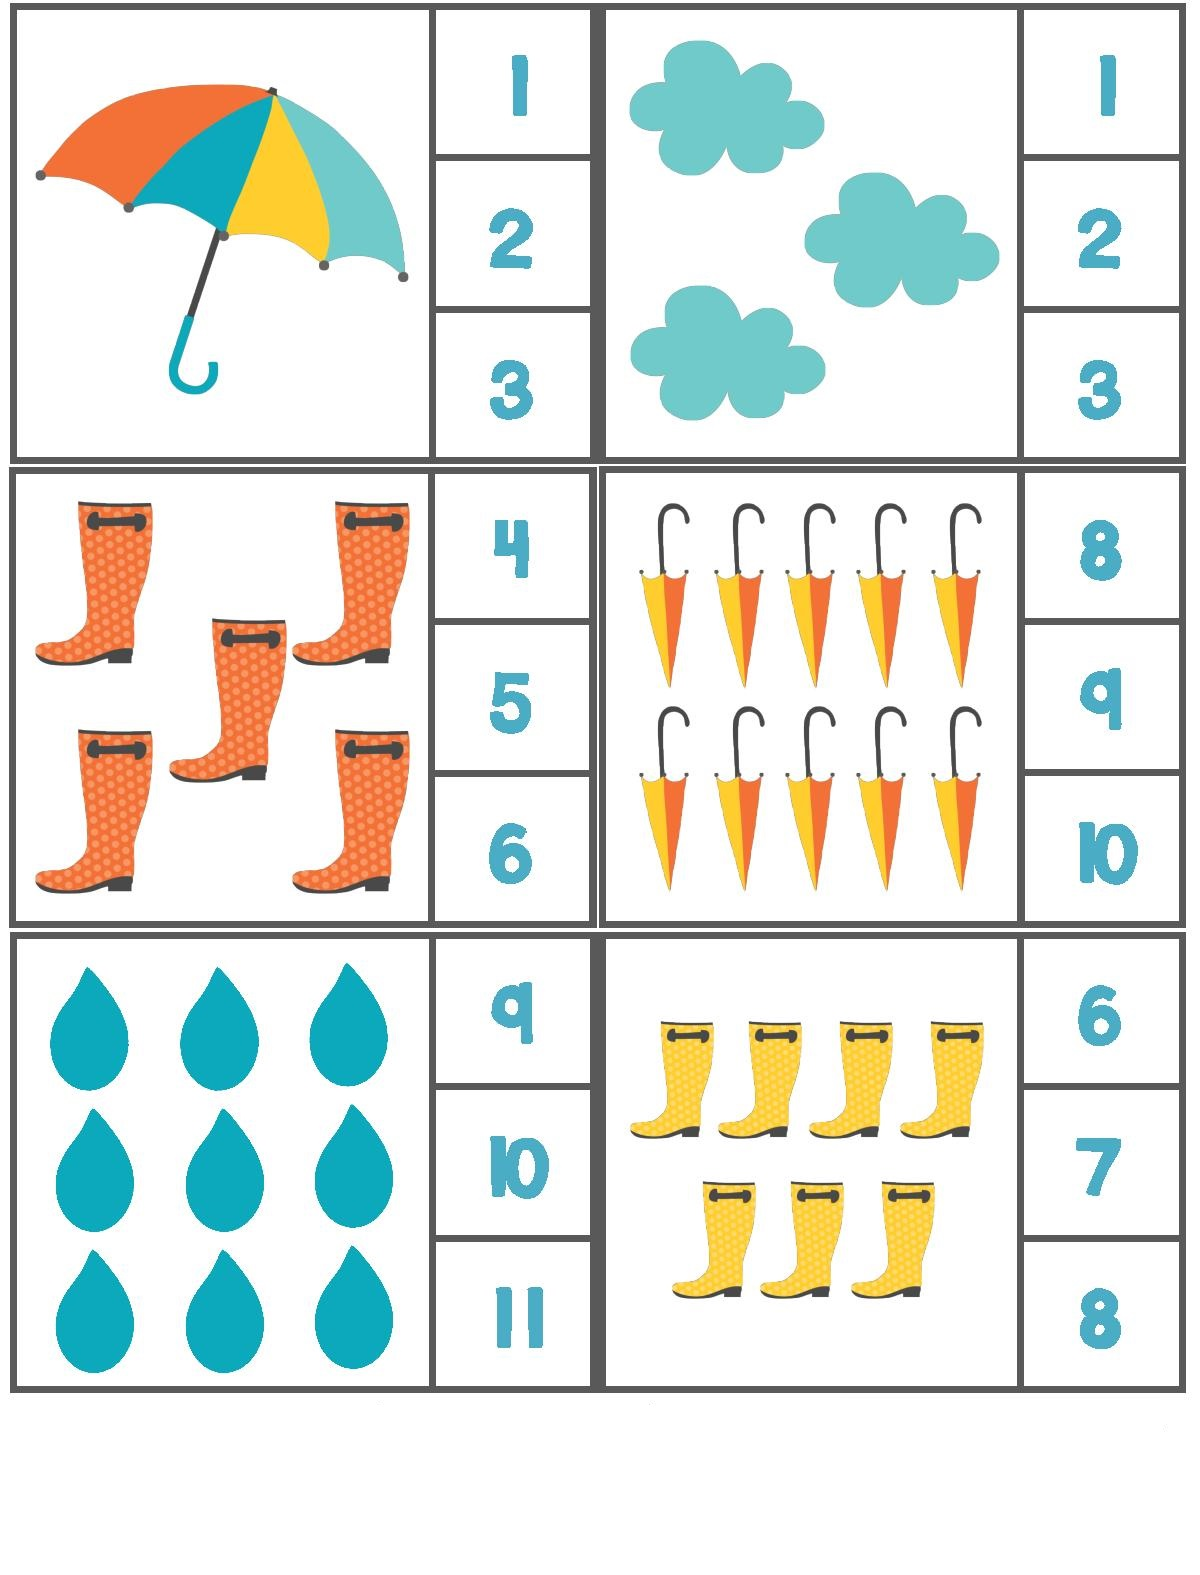 Rain Themed Counting Activity With Clothespin 3 Preschool And Homeschool